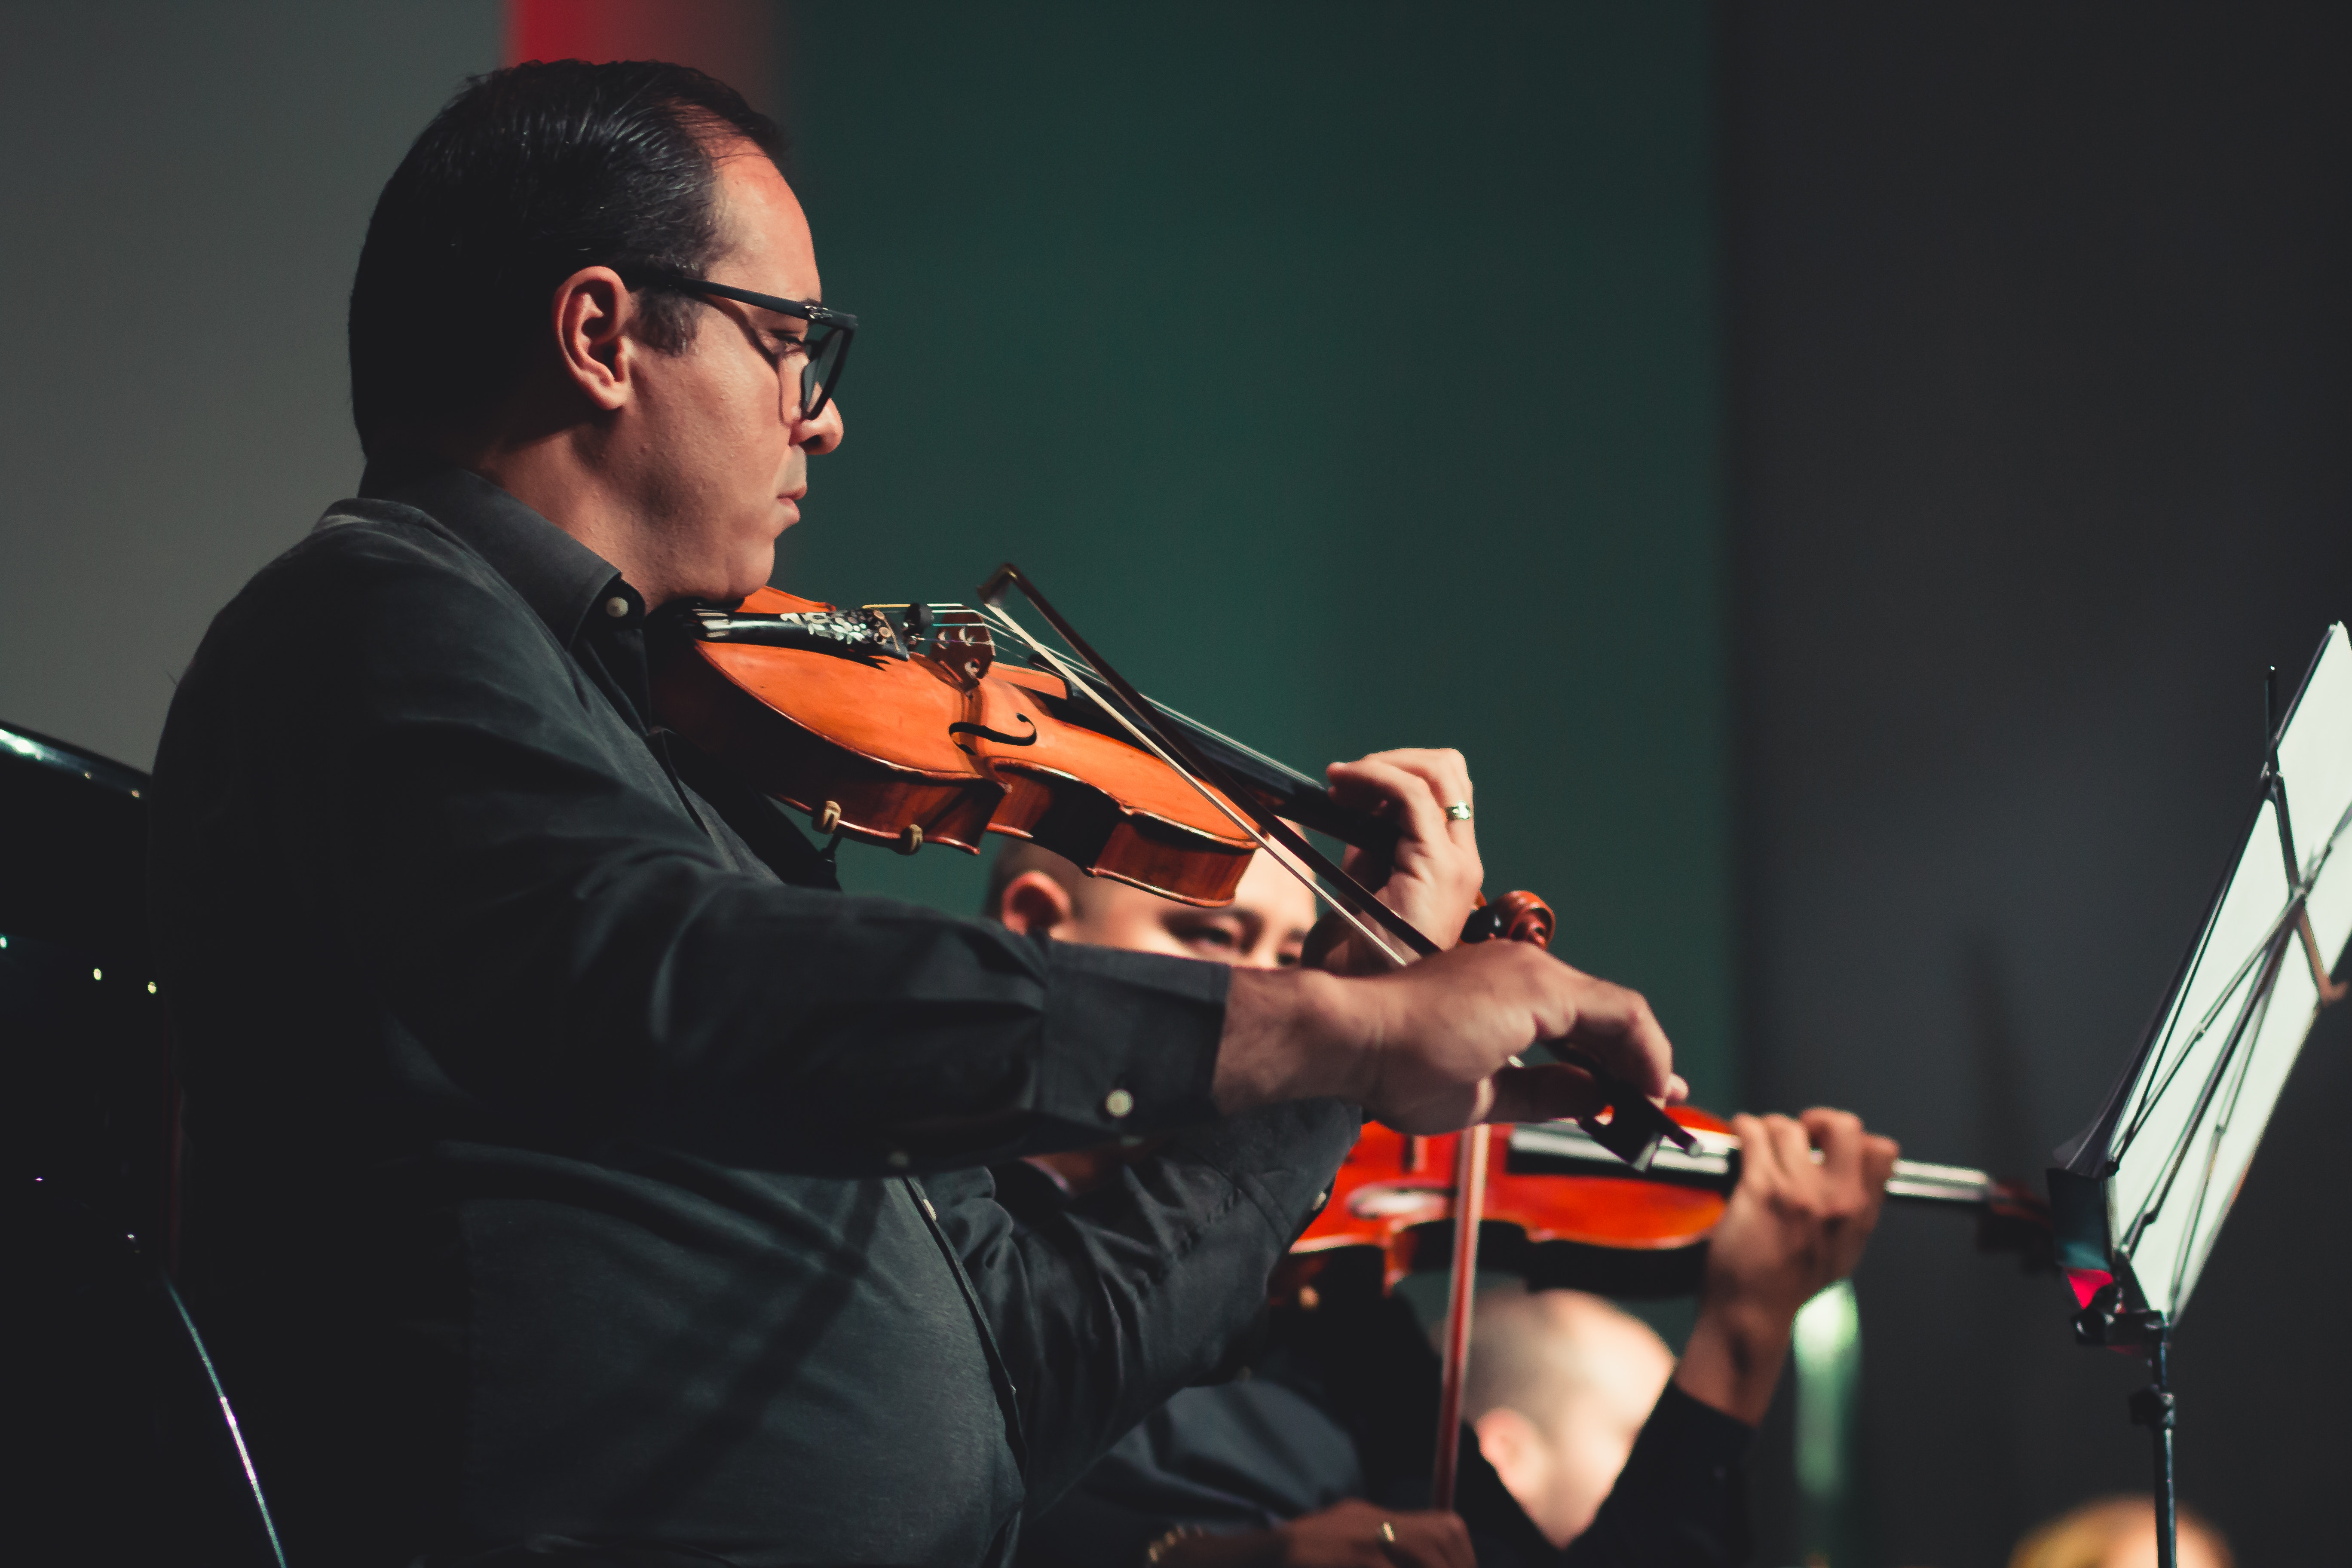 man-playing-violin-on-stage-2102573